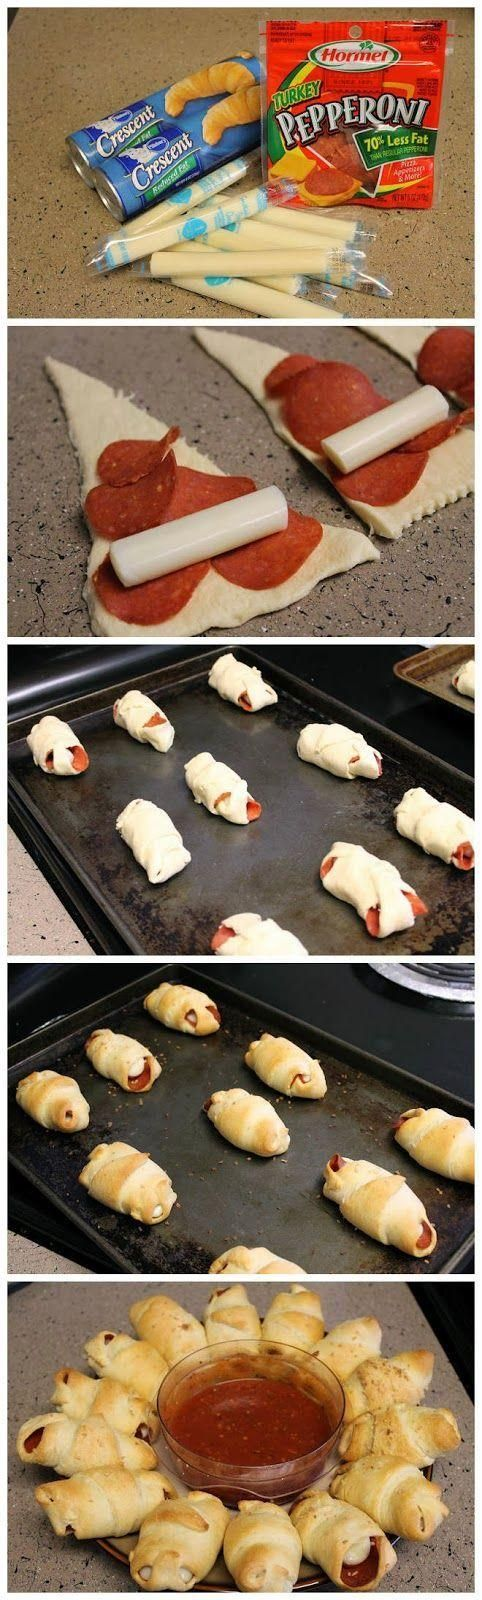 *Crescent Pepperoni Roll-Ups would be perfect for appetizers. Kids will totally eat these too.